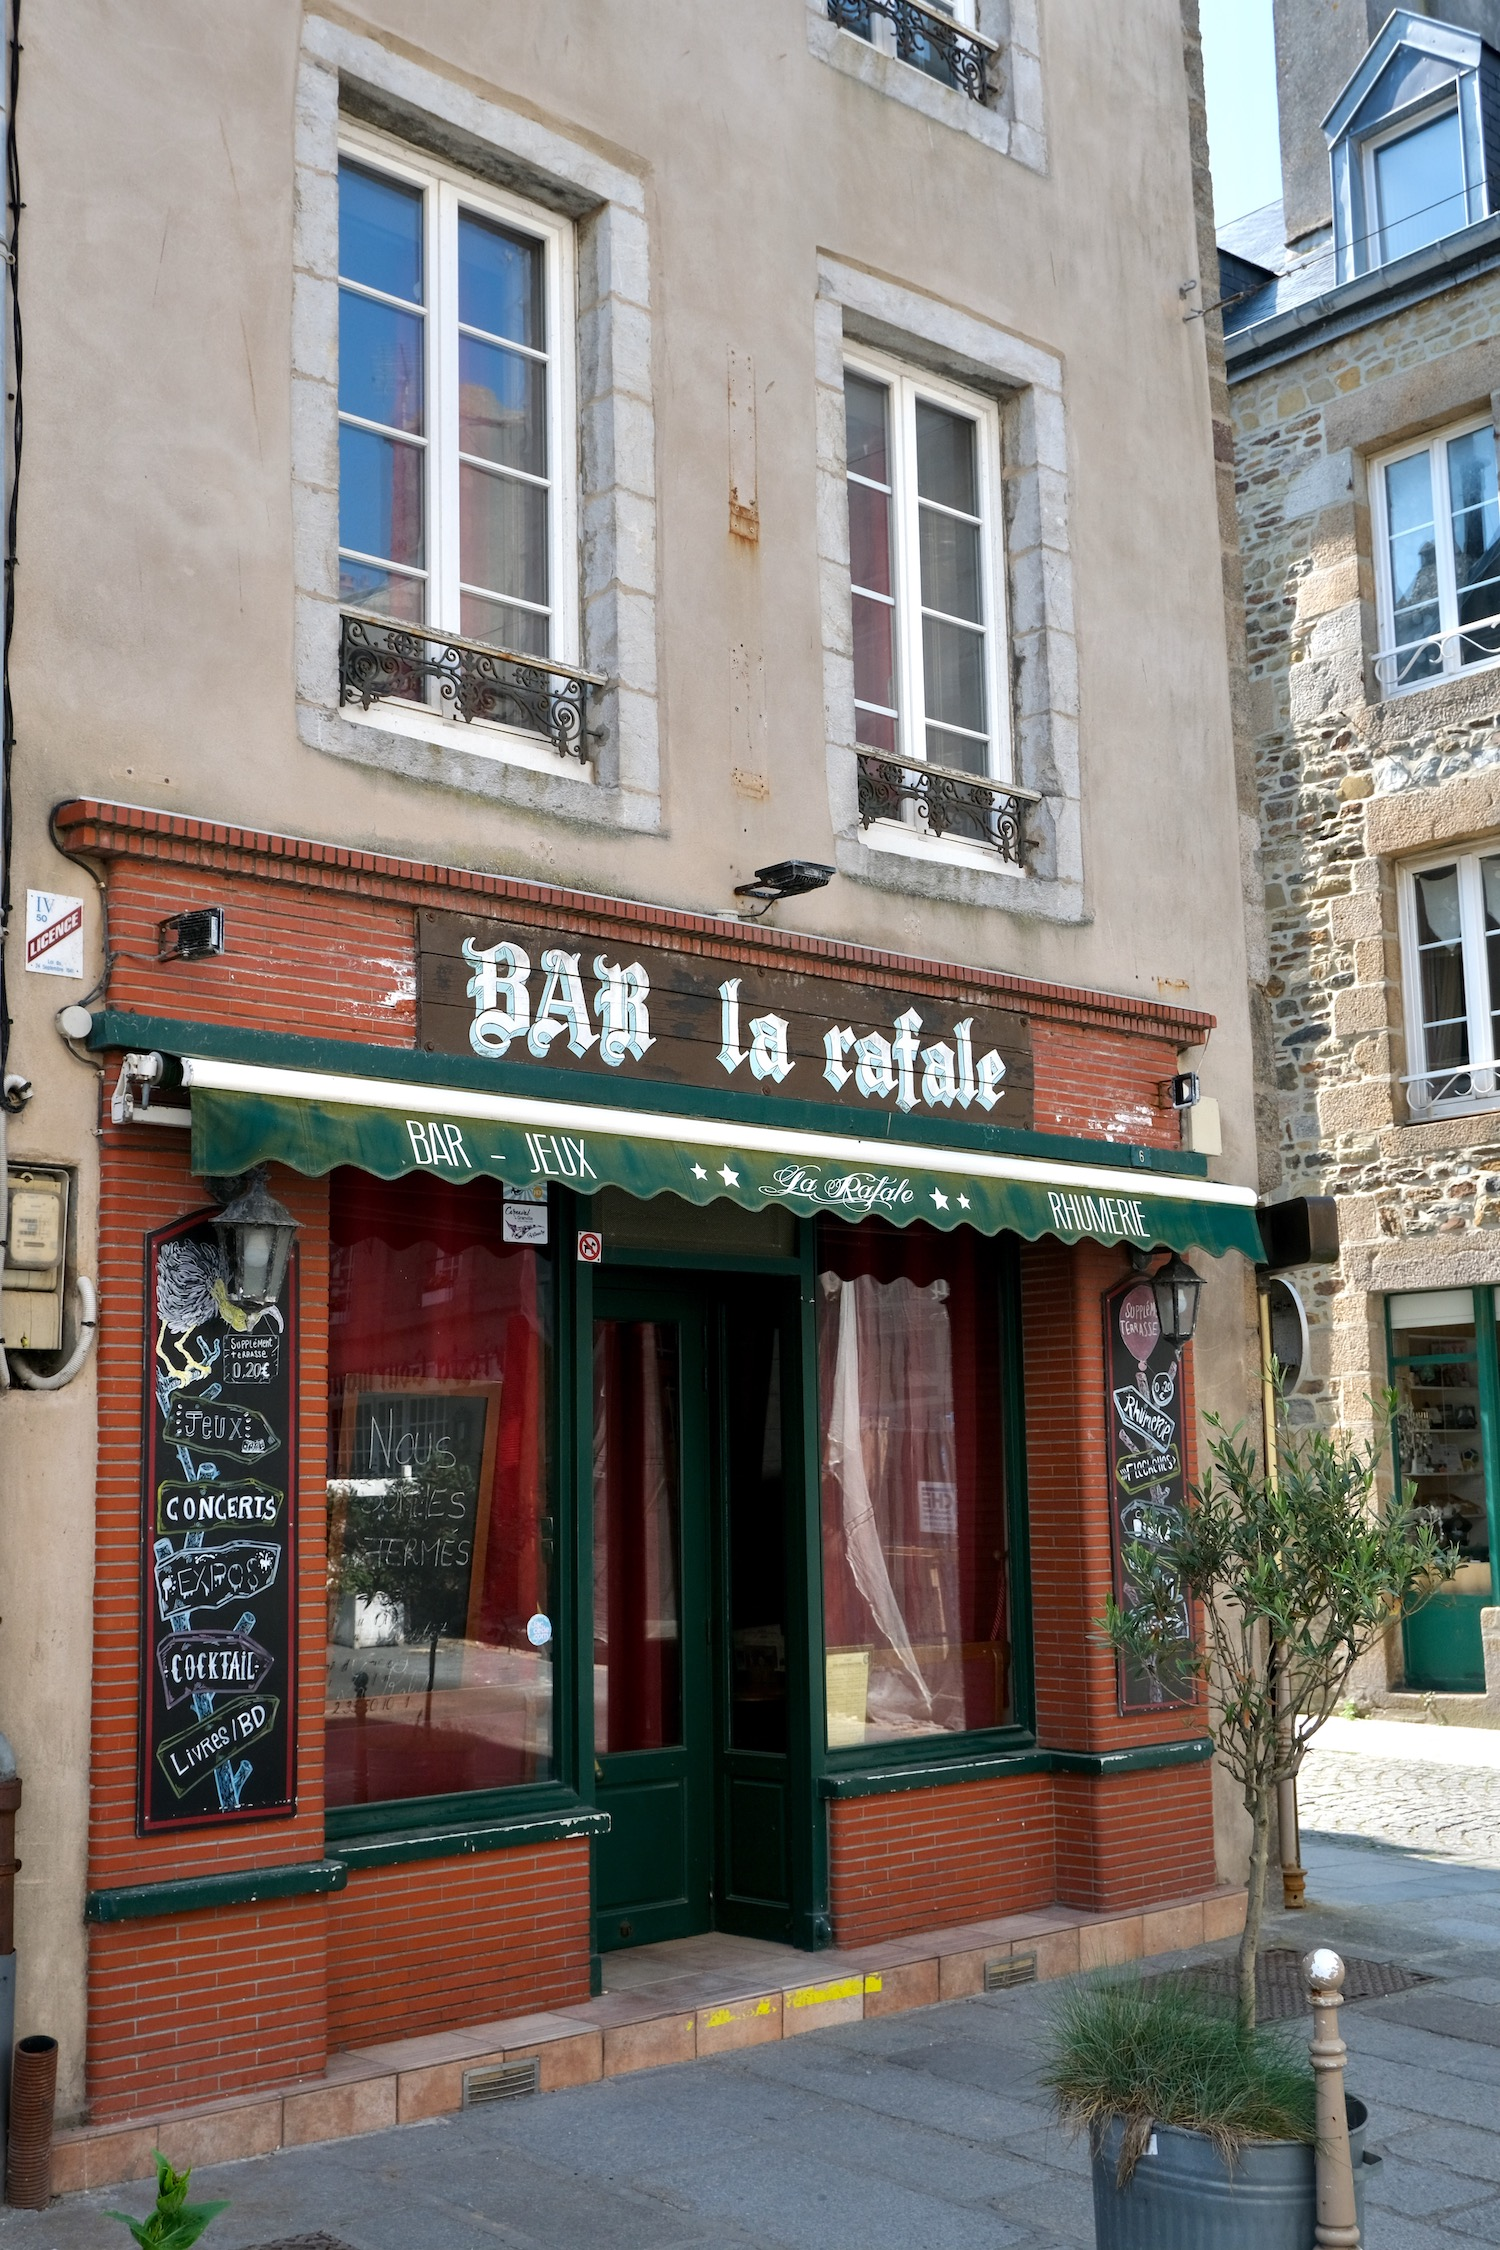 La Haute Ville Normandy bar